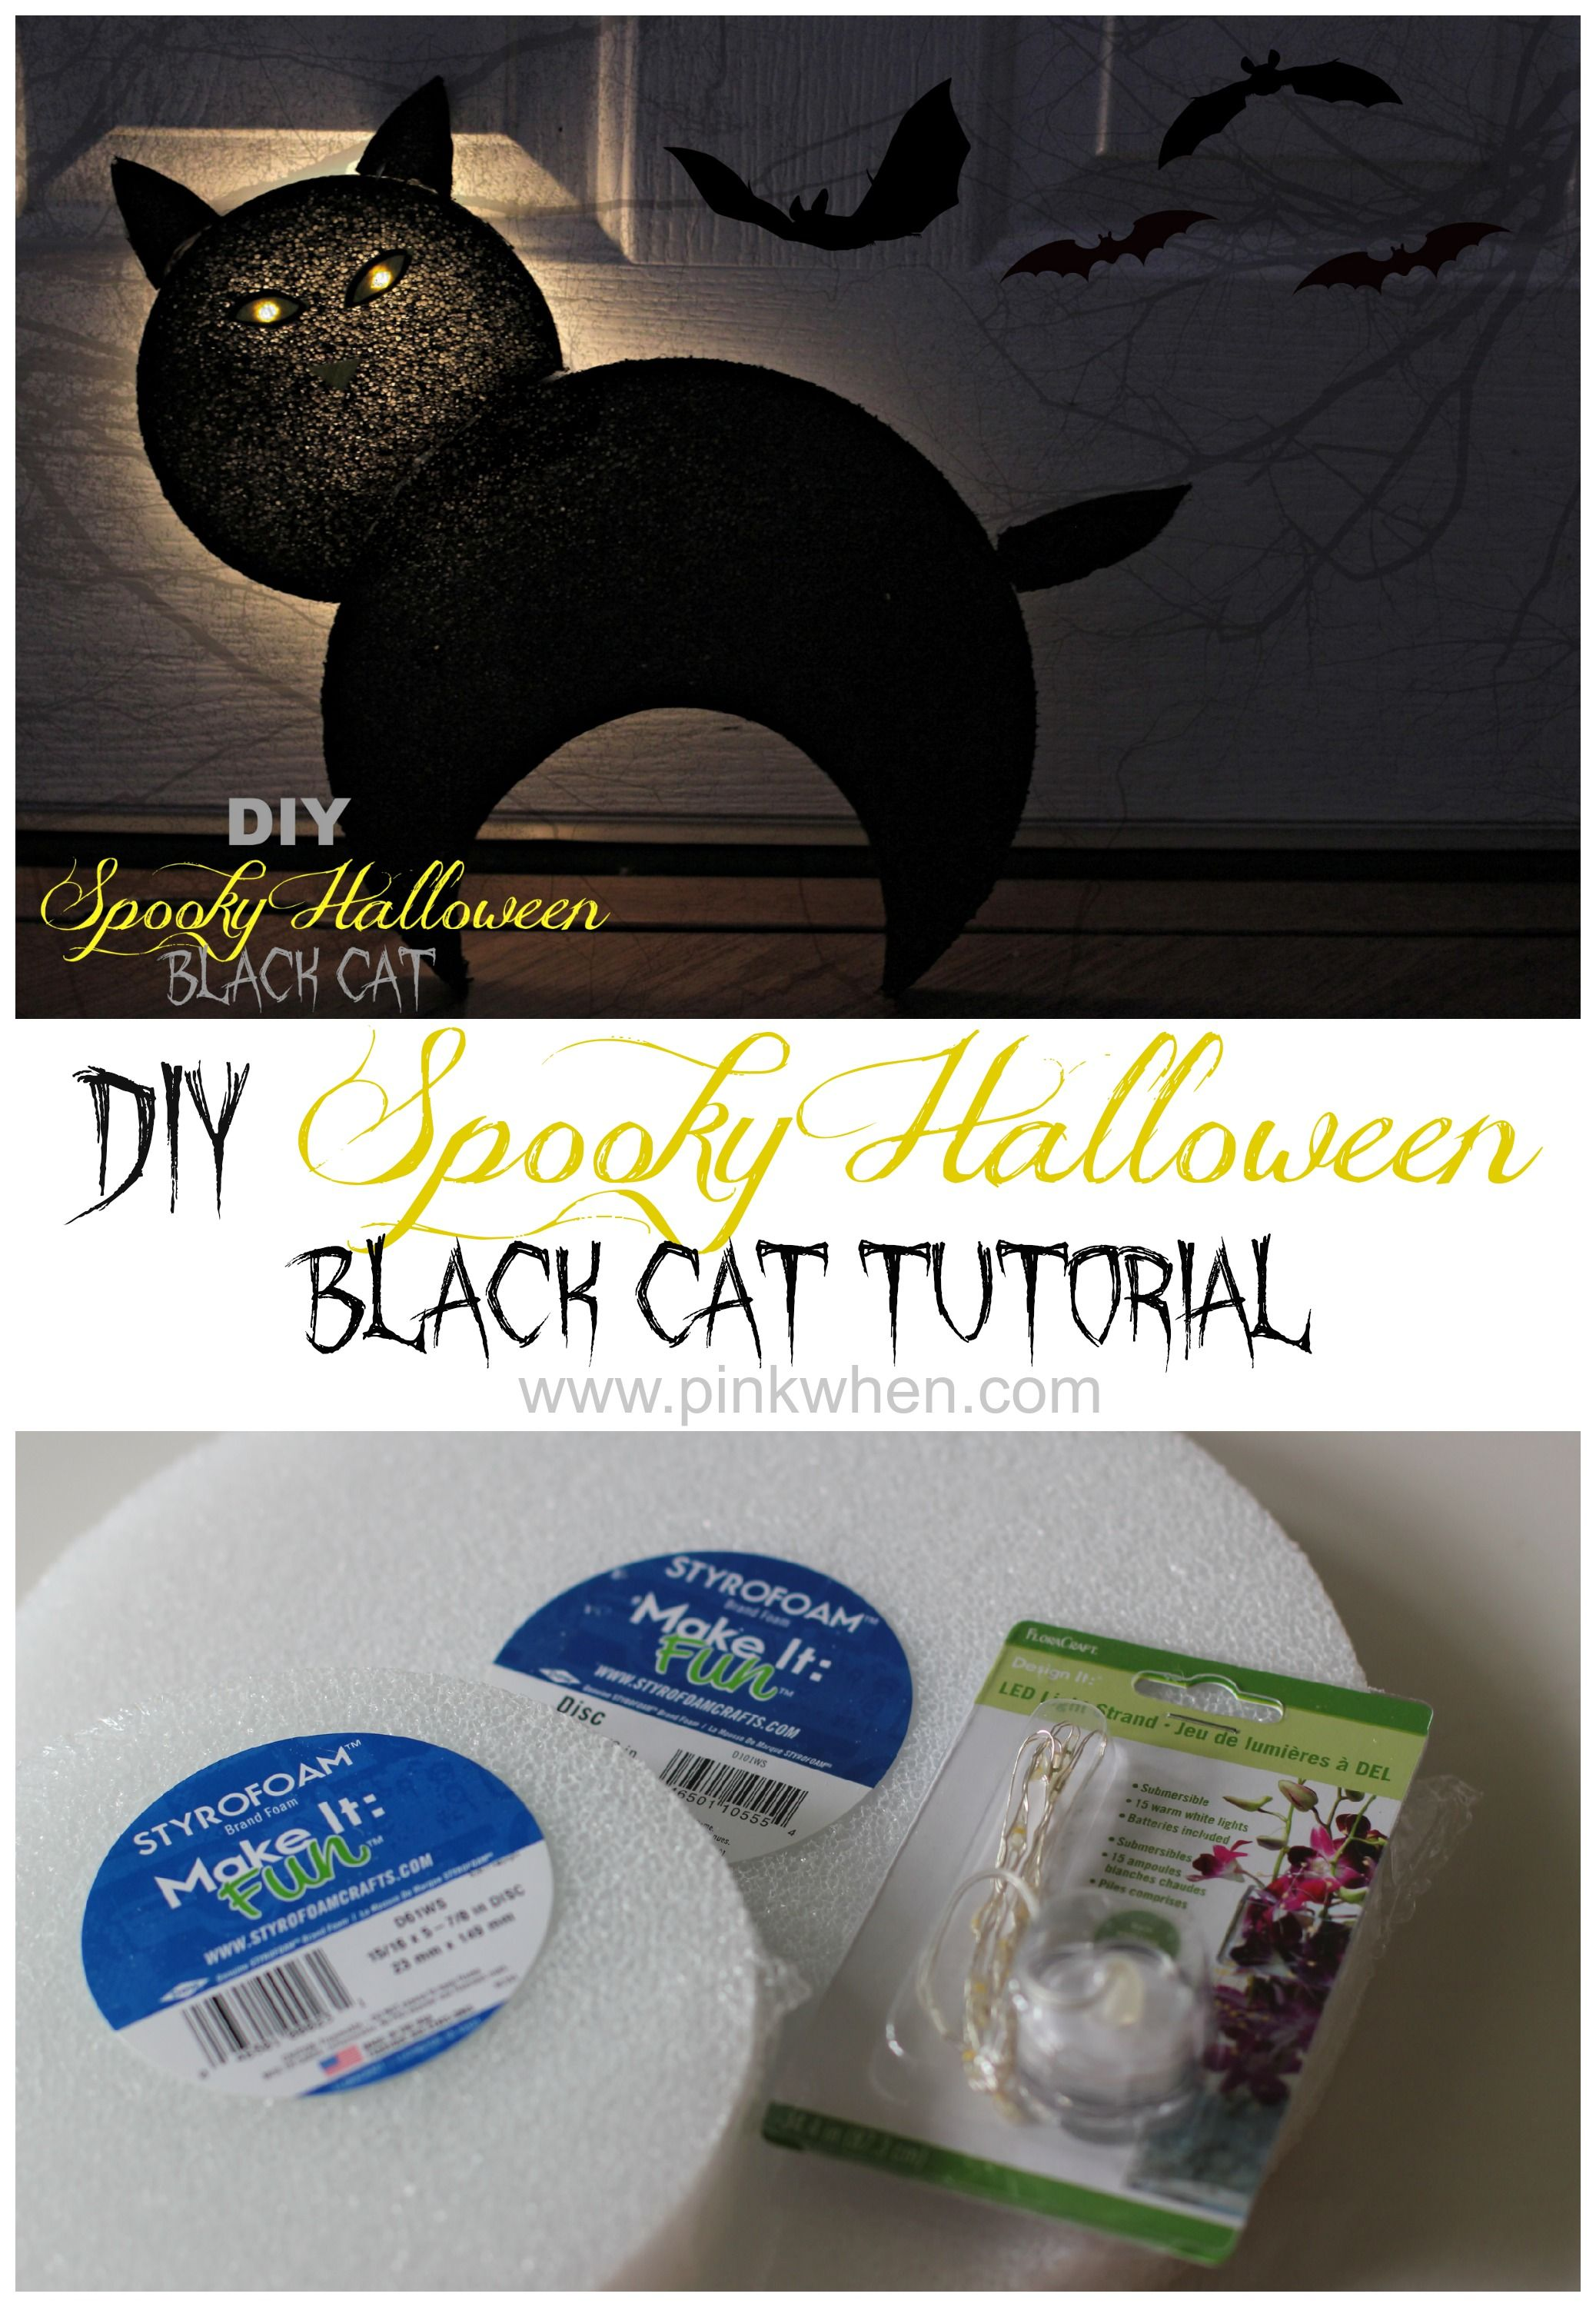 DIY Spooky Halloween Black Cat Halloween black cat, Spooky - How To Make Halloween Decorations